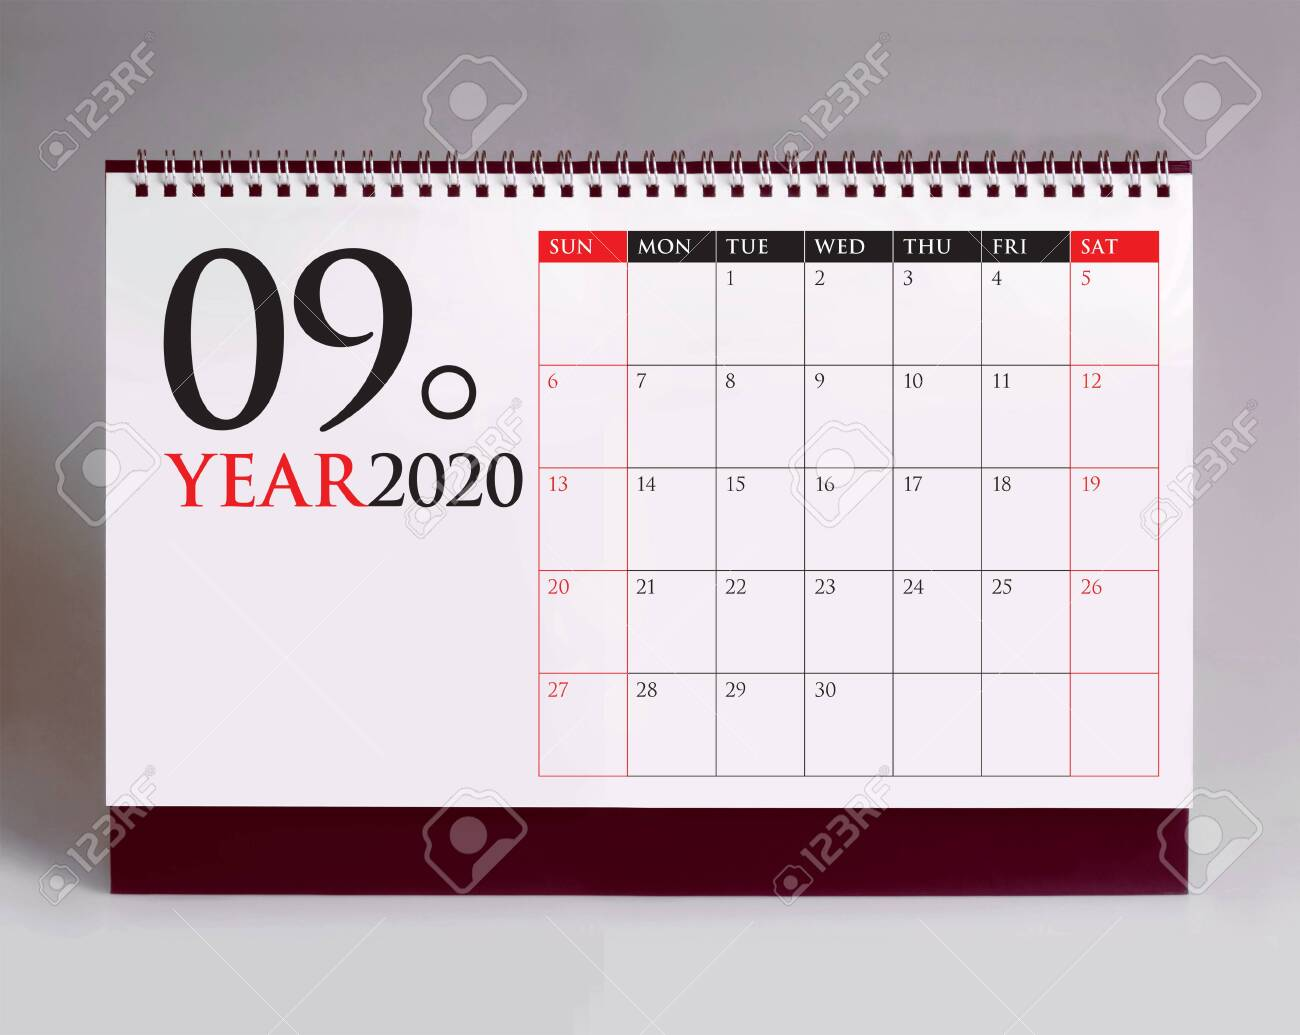 Games Coming Out In September 2020.Simple Desk Calendar For September 2020